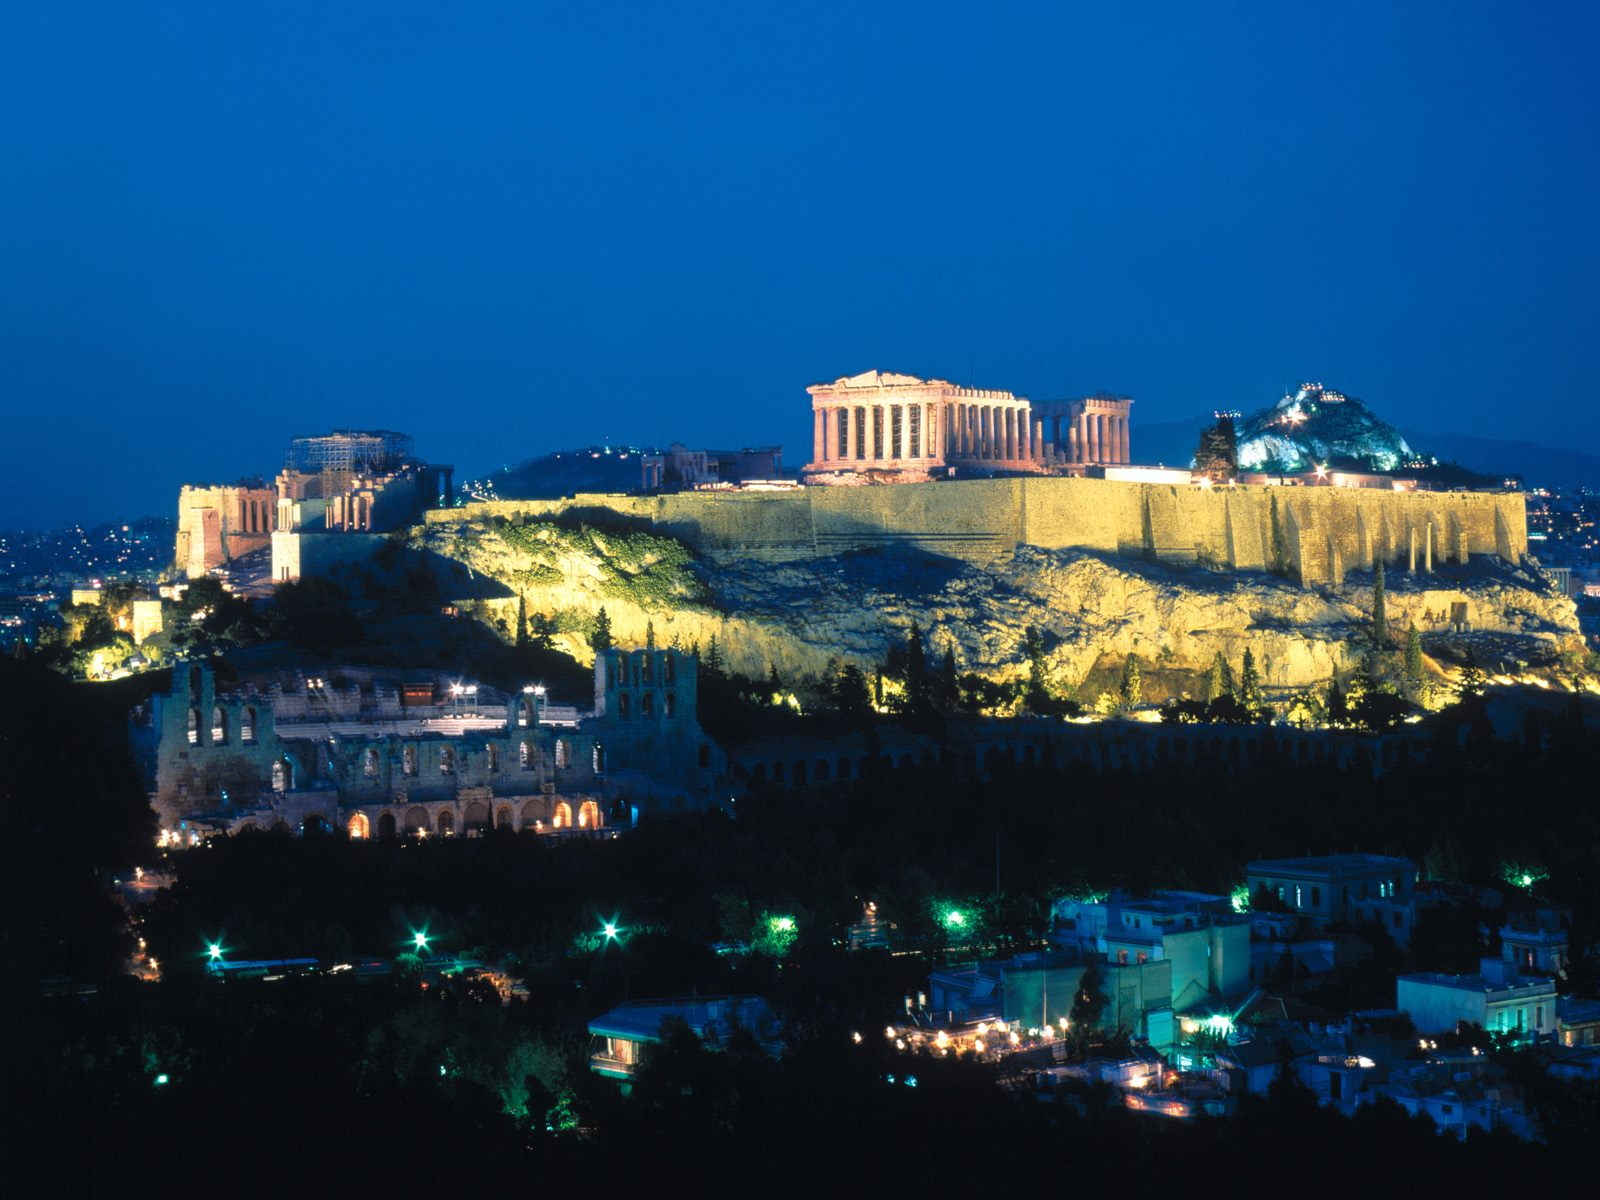 You are viewing the Greece wallpaper named Greece 1.